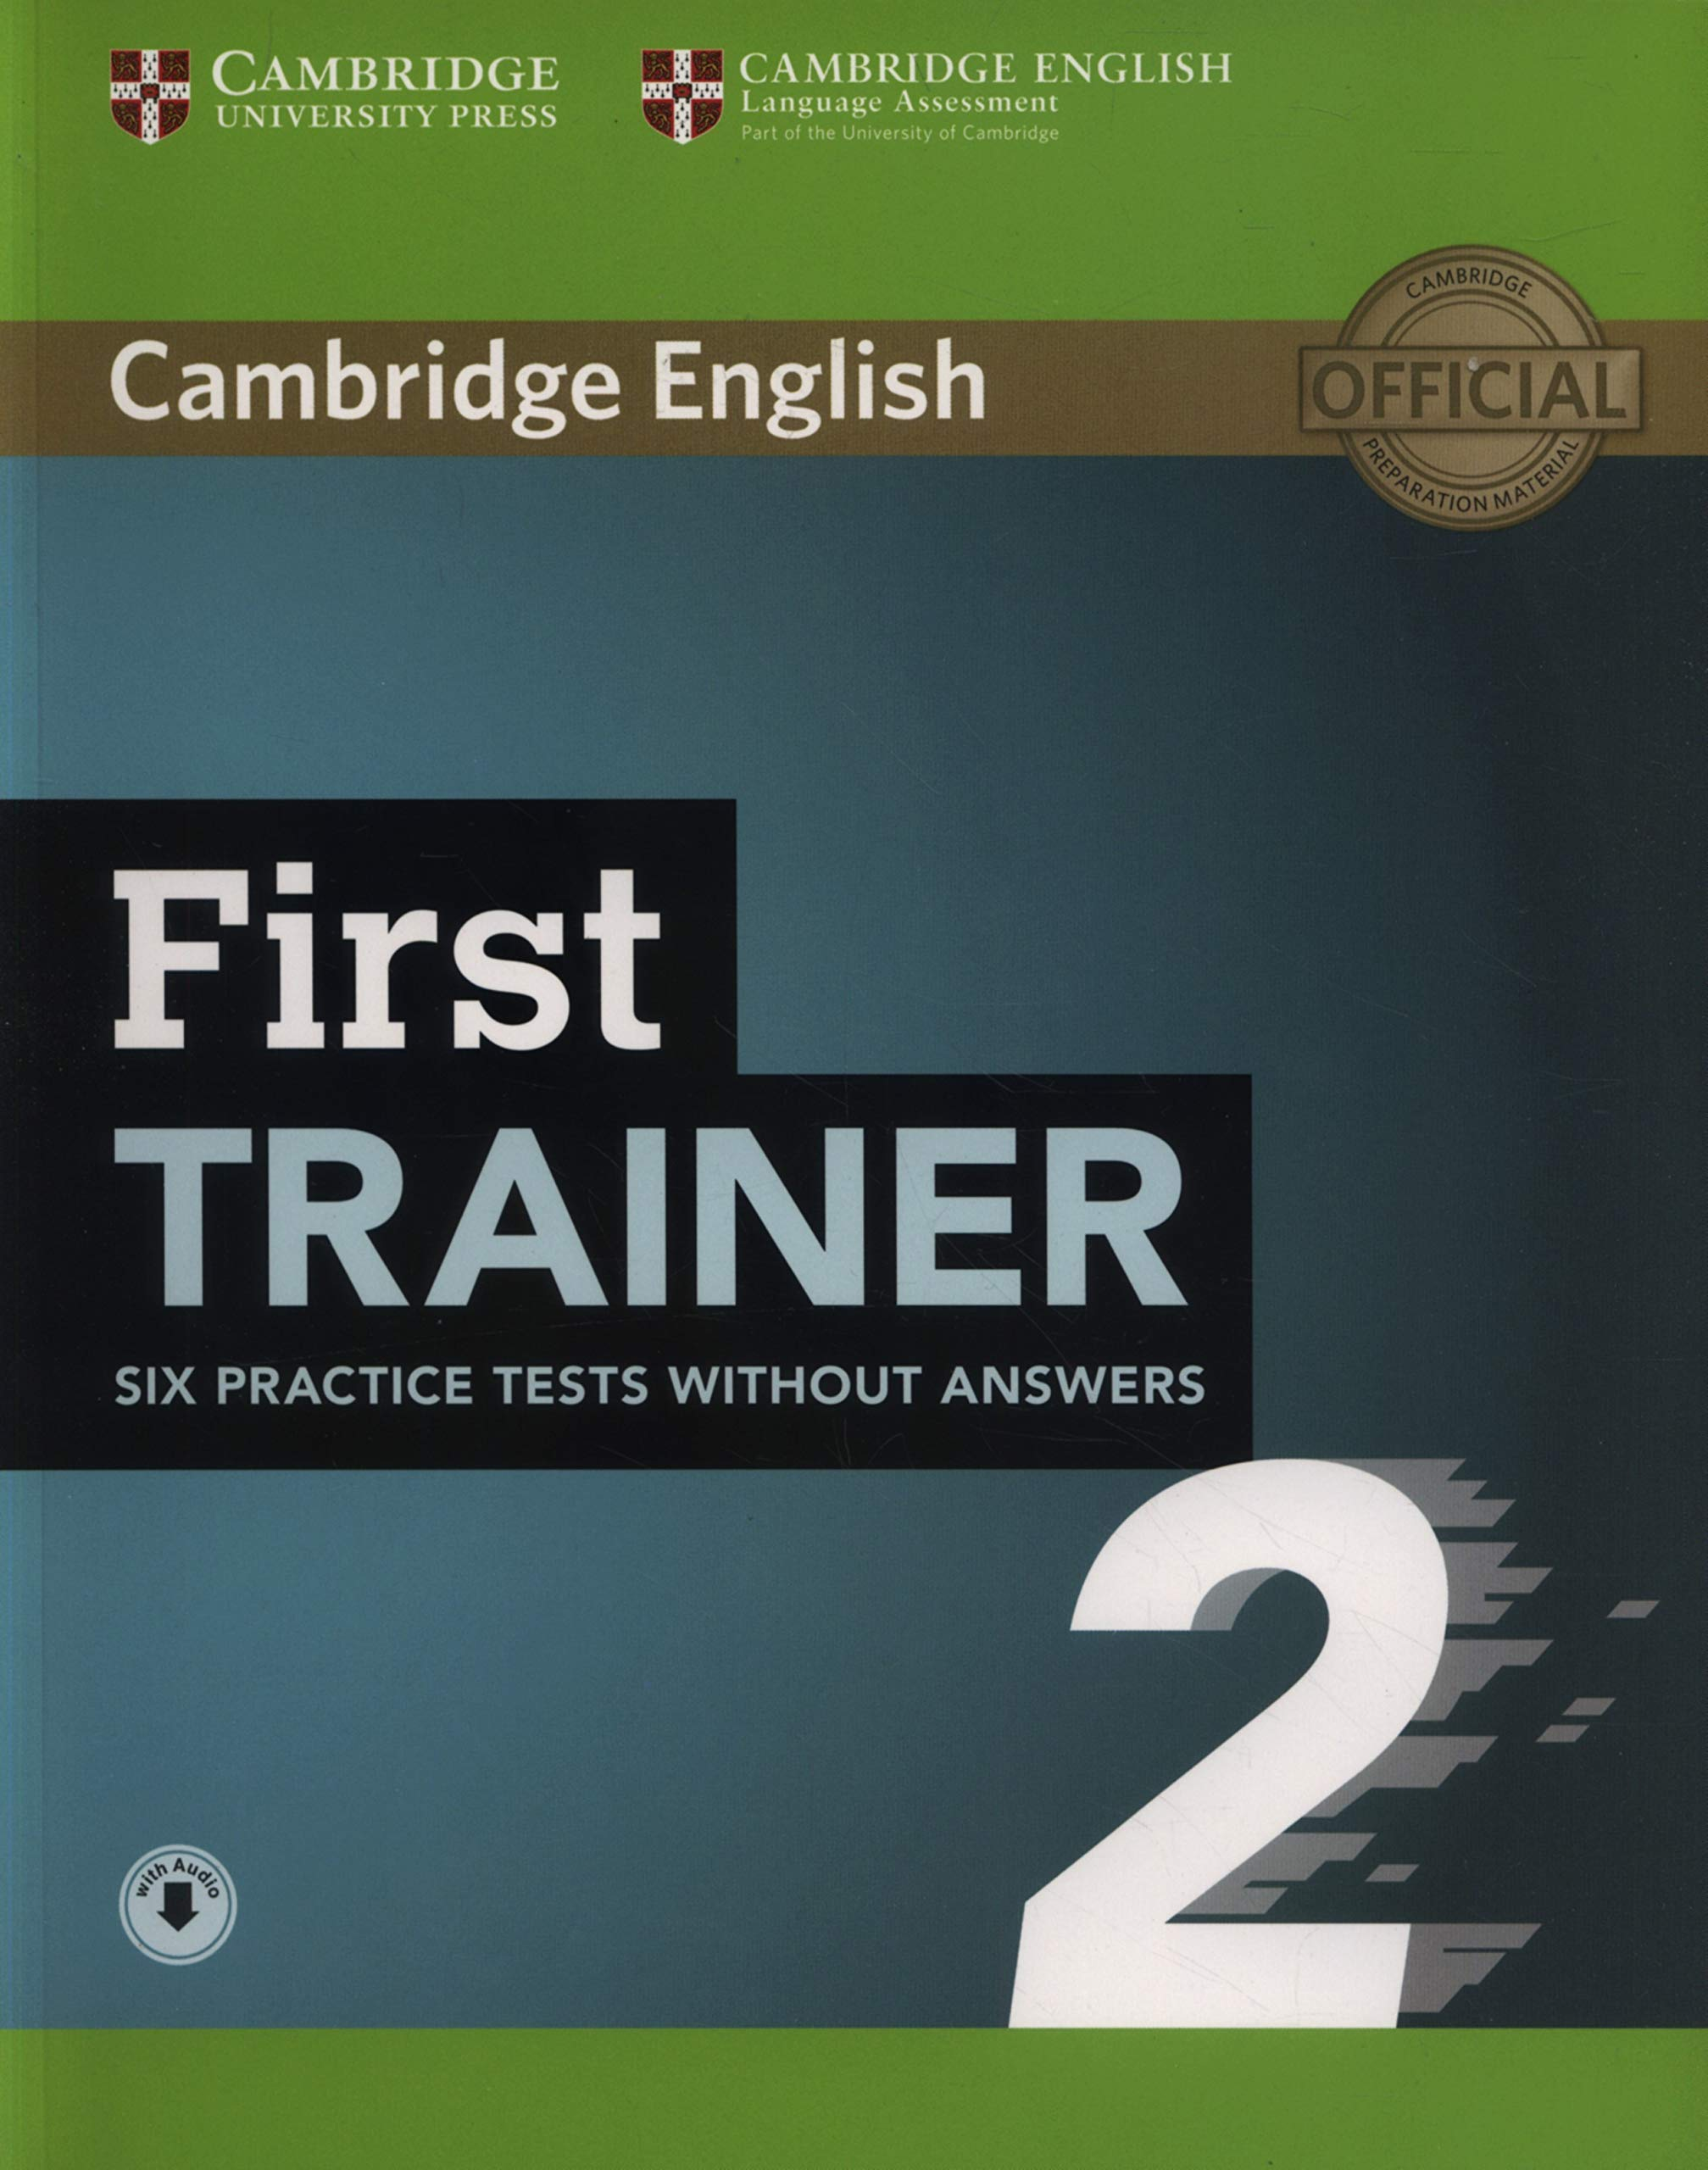 cambridge first trainer  First Trainer 2 Six Practice Tests without Answers with Audio: Not ...